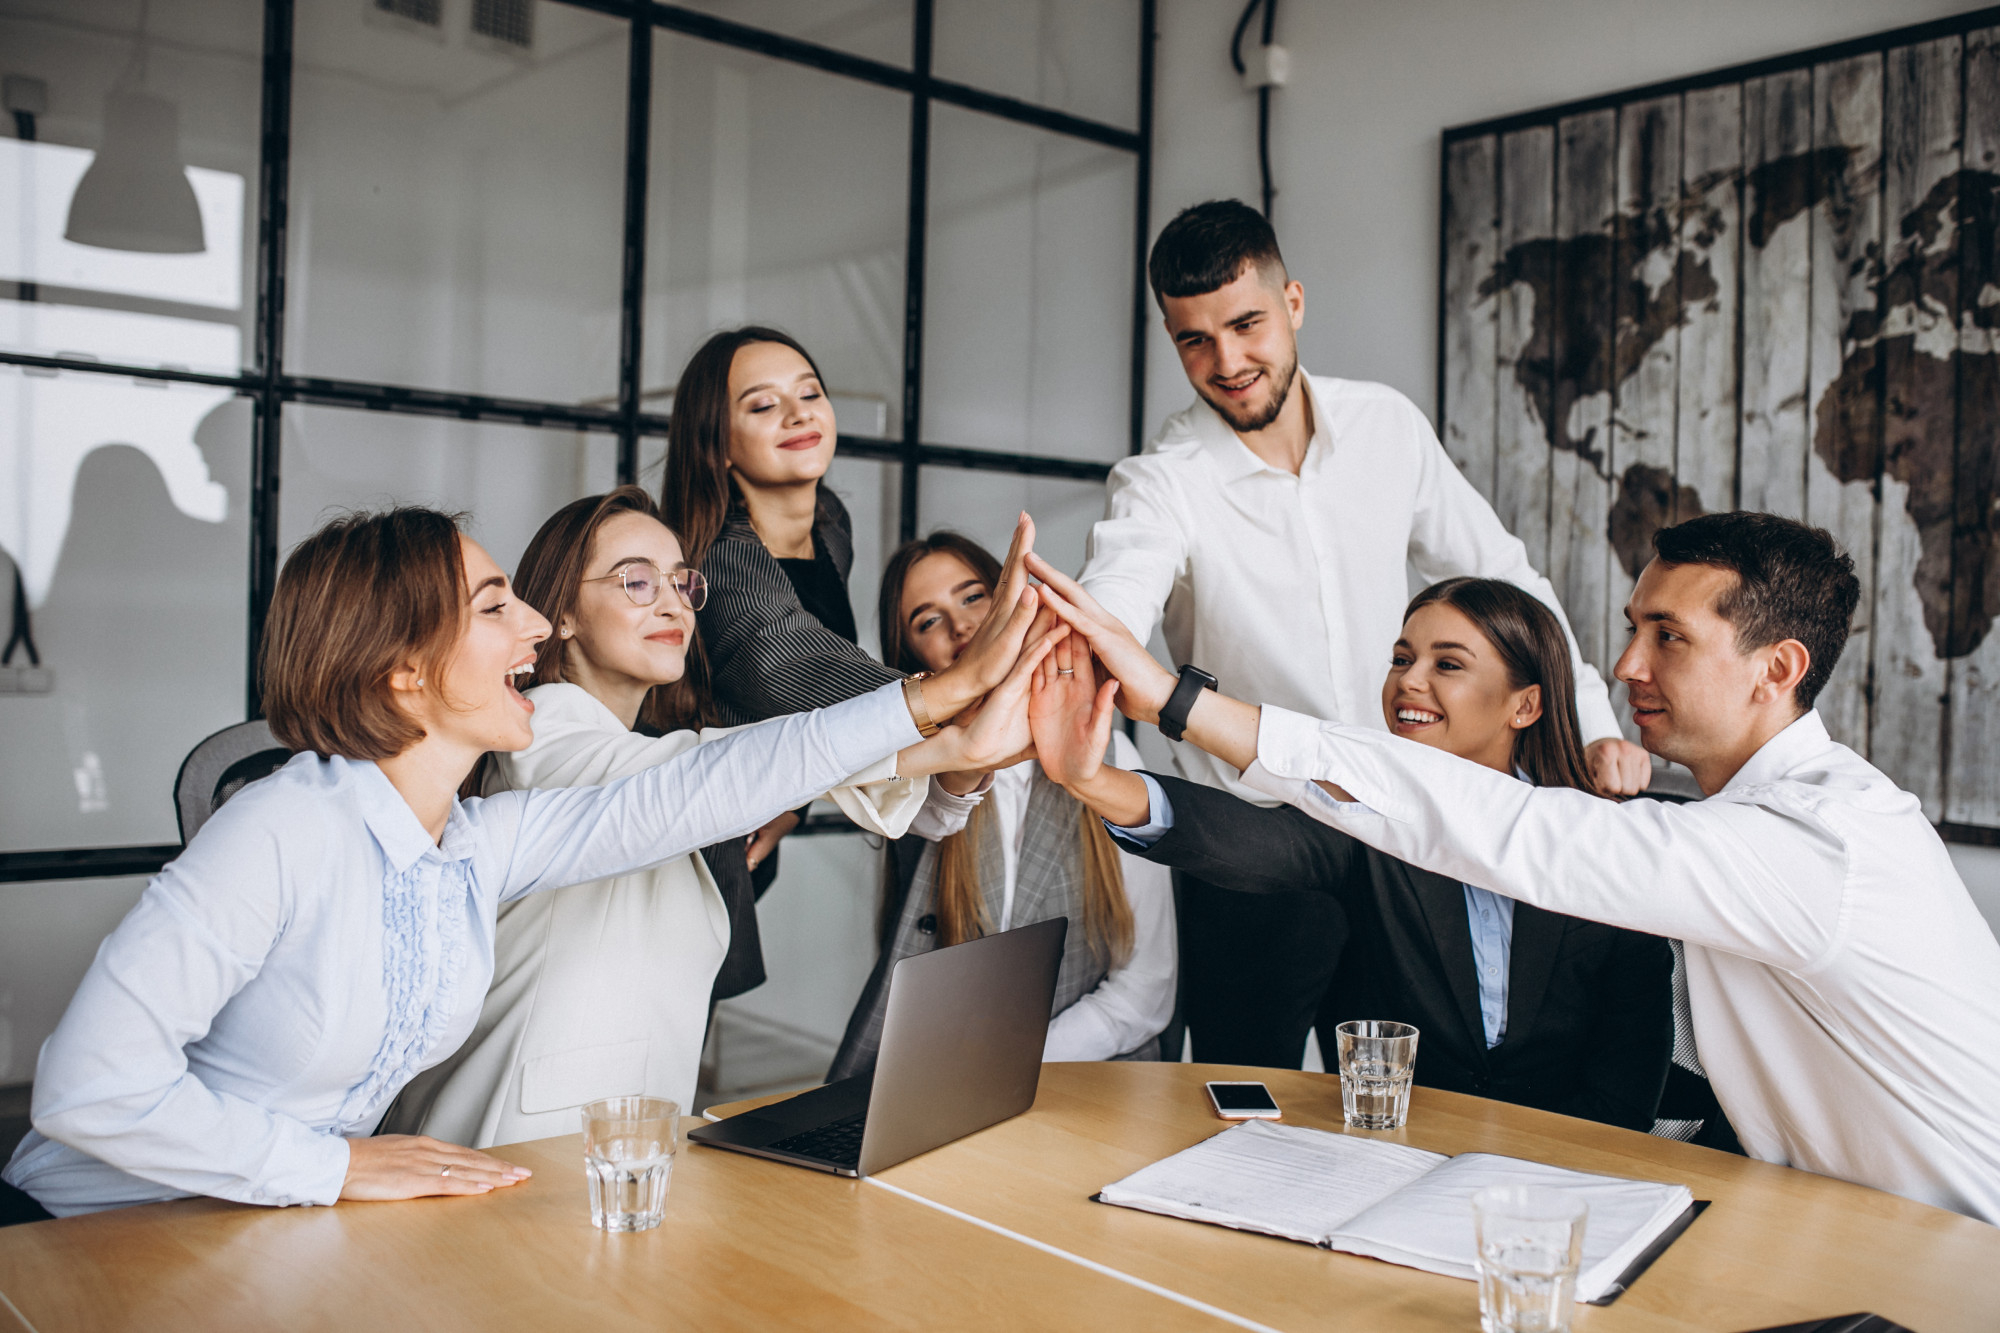 Increase The Level Of Likeability Among Your Team Members